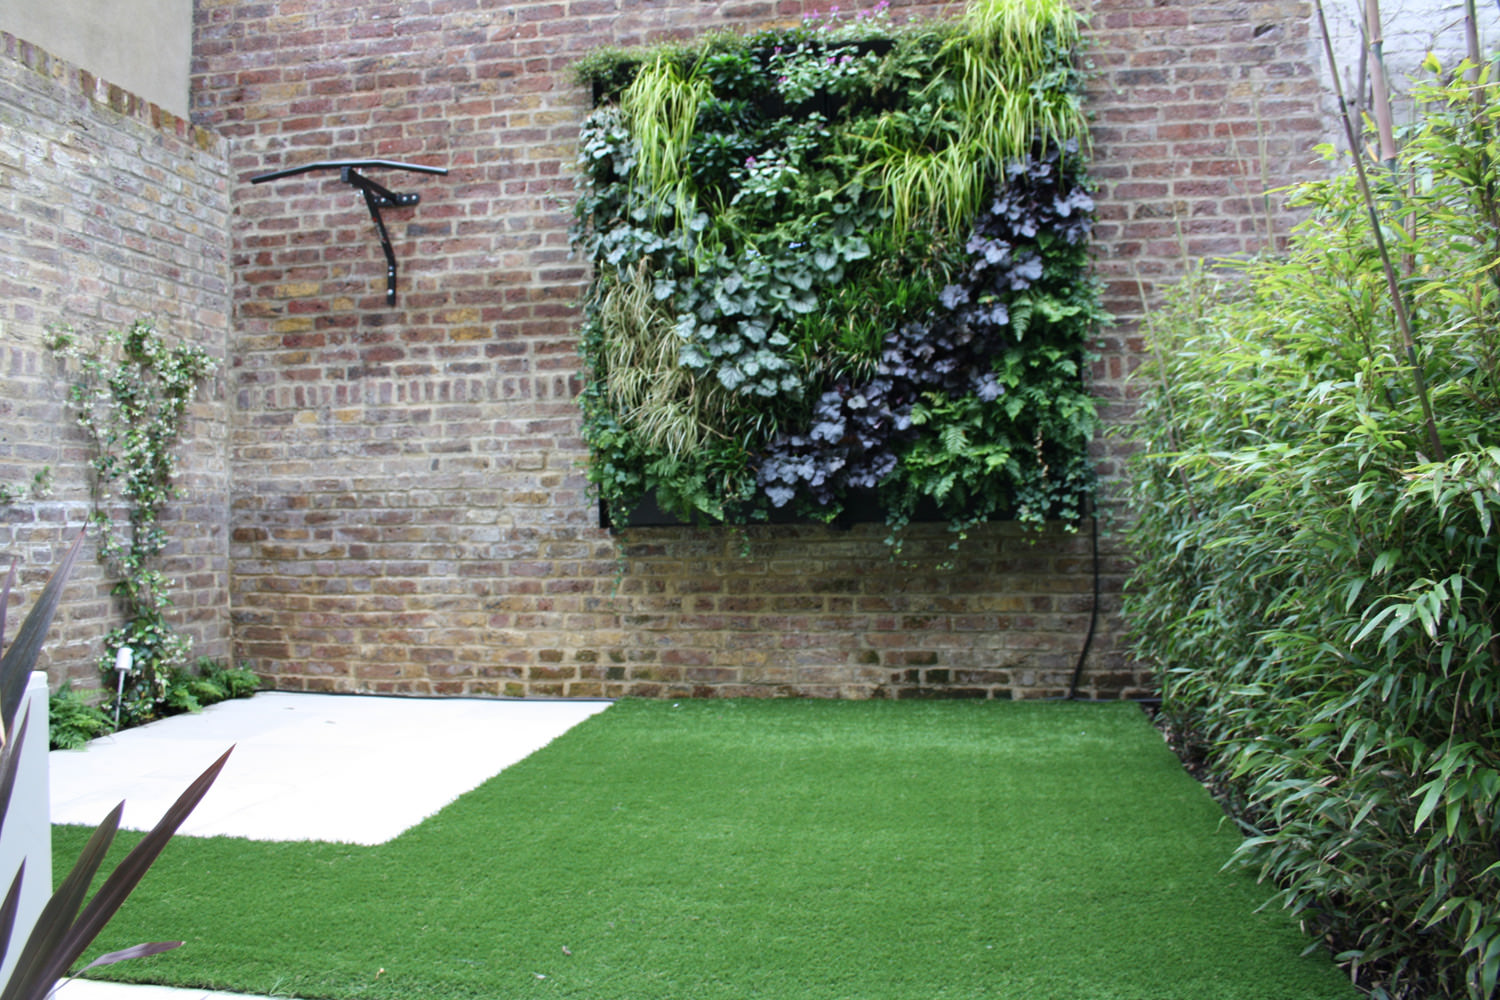 Top 10 london garden designs garden club london for Garden design plans uk